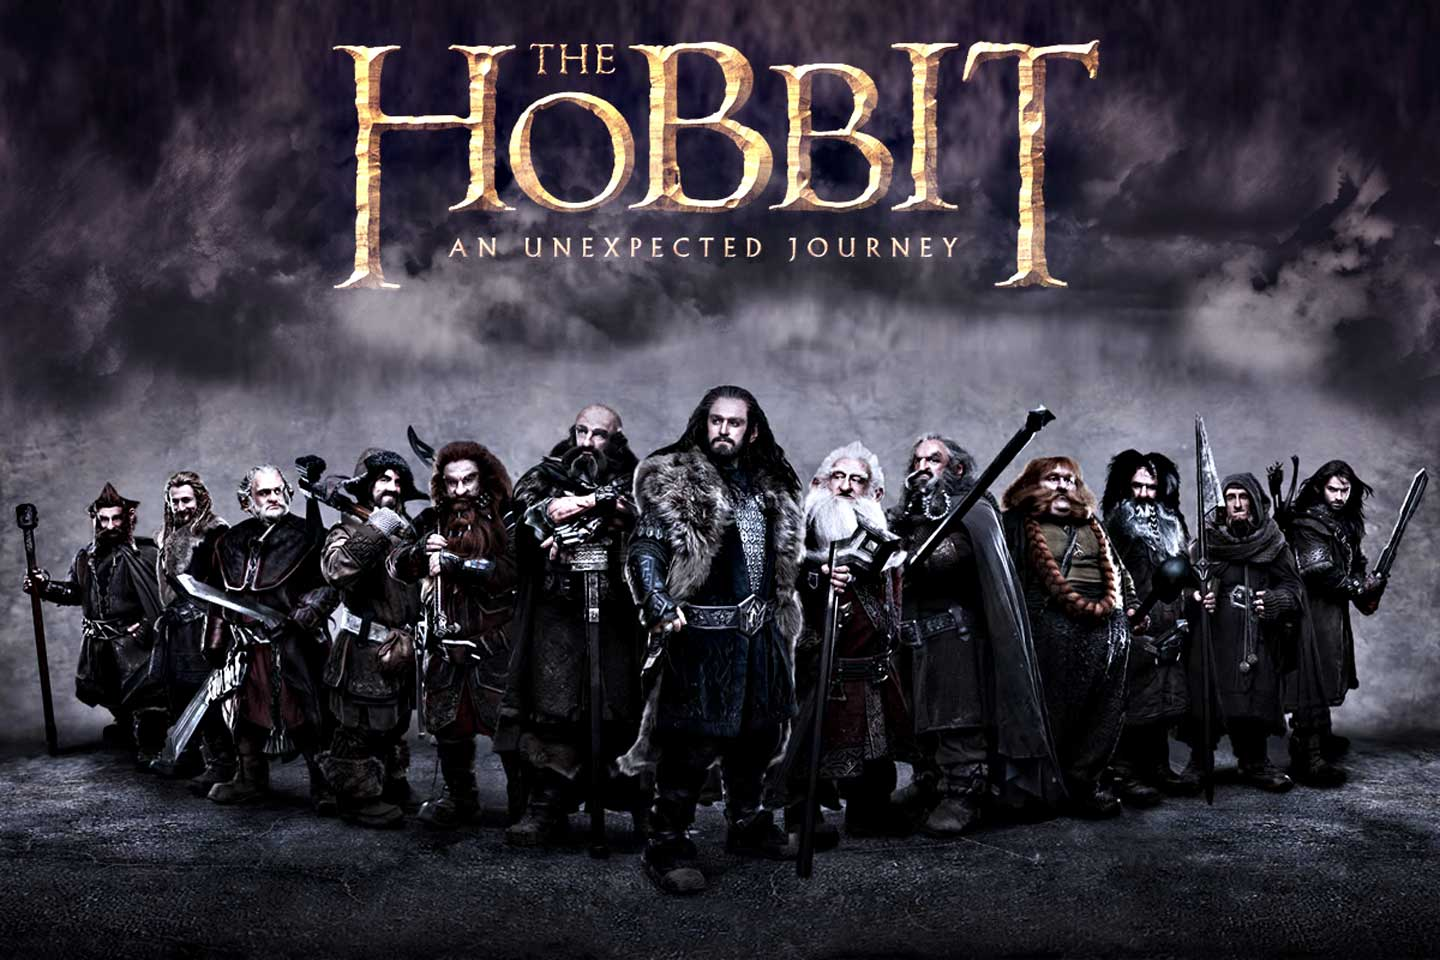 The Hobbit An Unexpected Journey Movie Wallpapers HD 1440x960